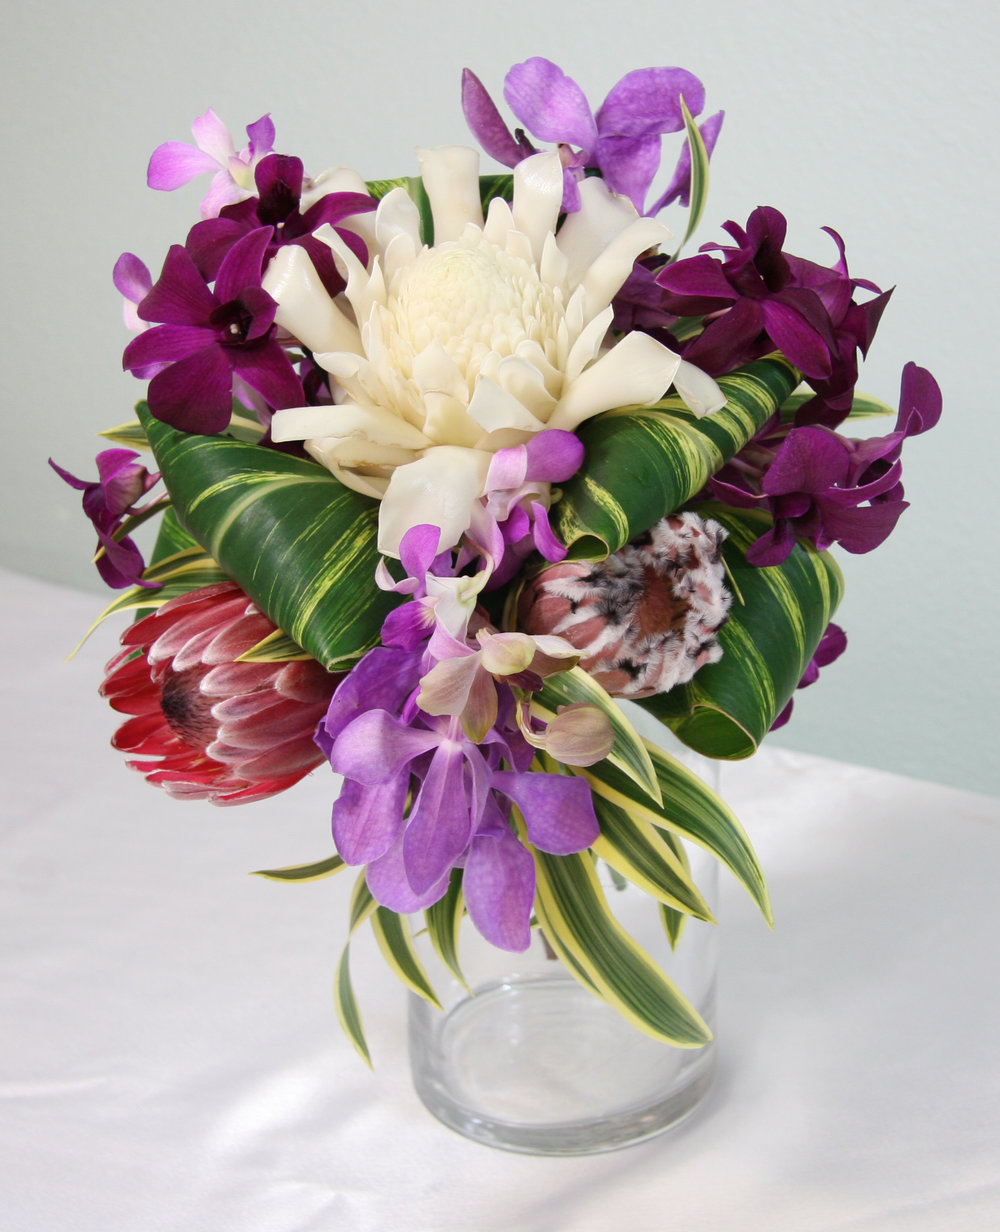 Tropical Bridal Bouquet - Choose your color palette